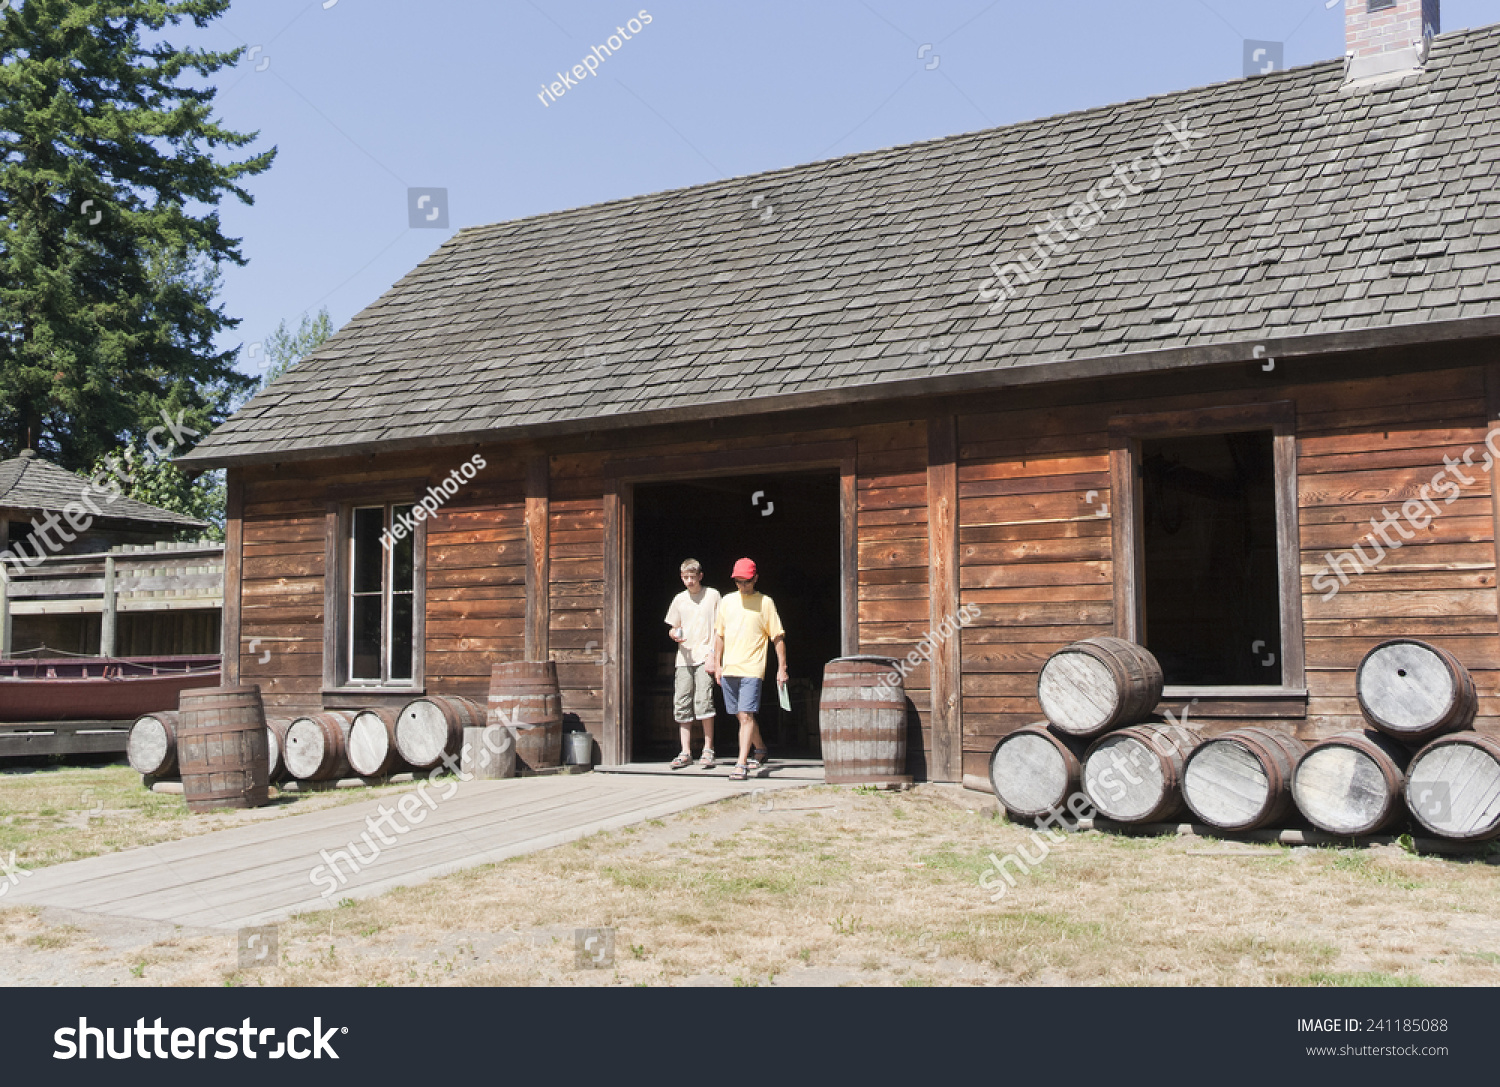 Log Cabin With Tourists And Barrels Rural Scenery In